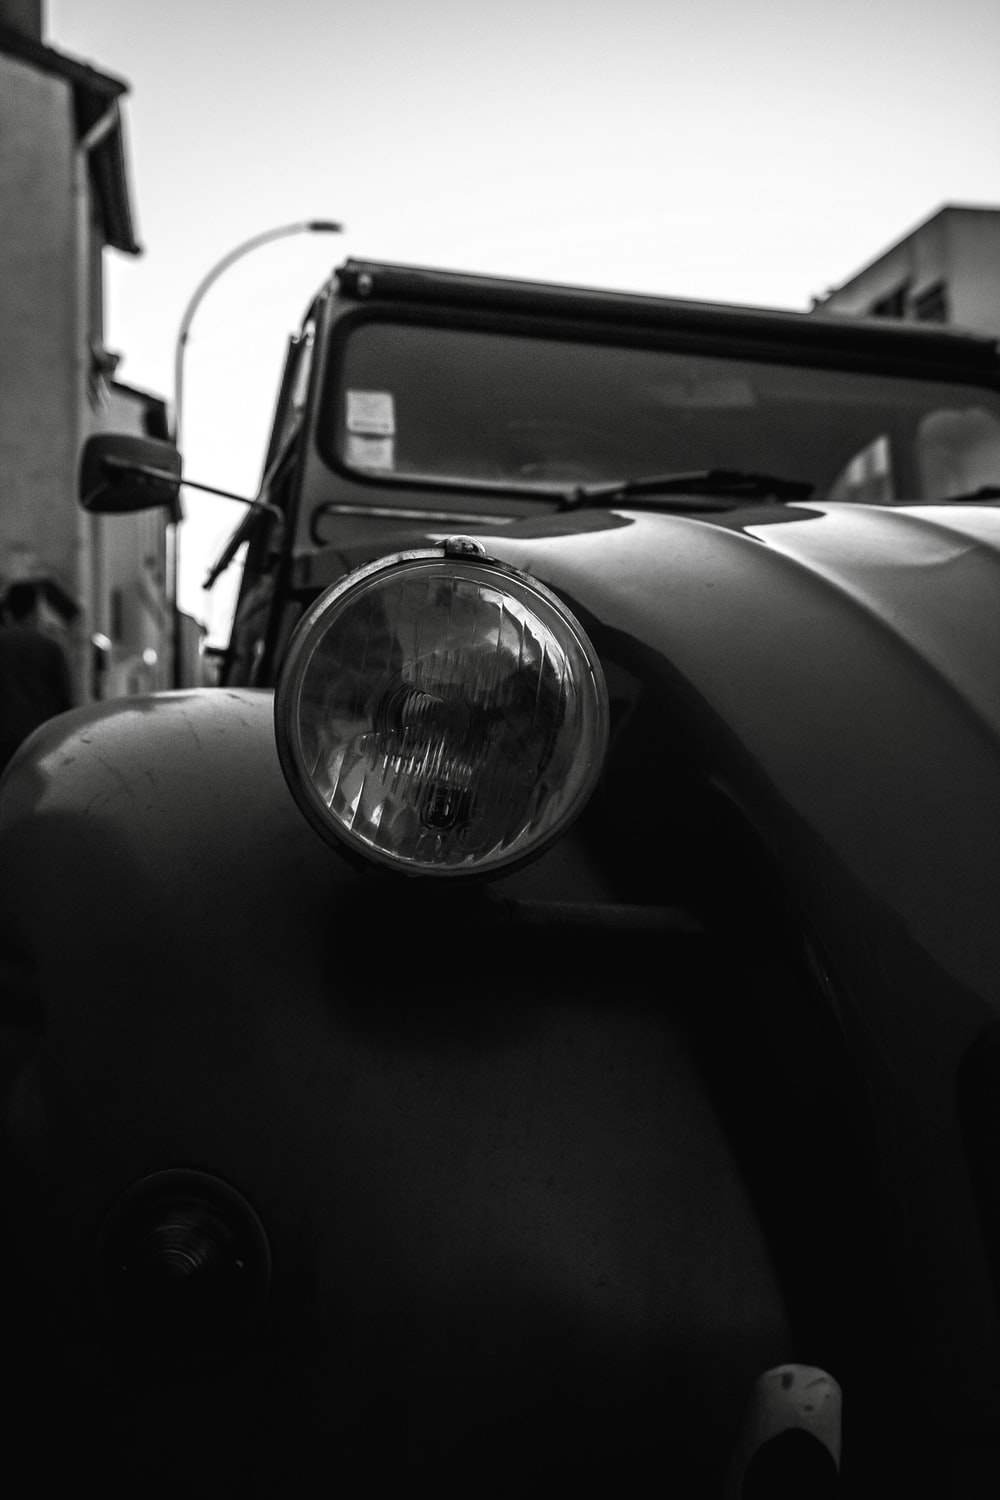 gray scale photo of vehicle